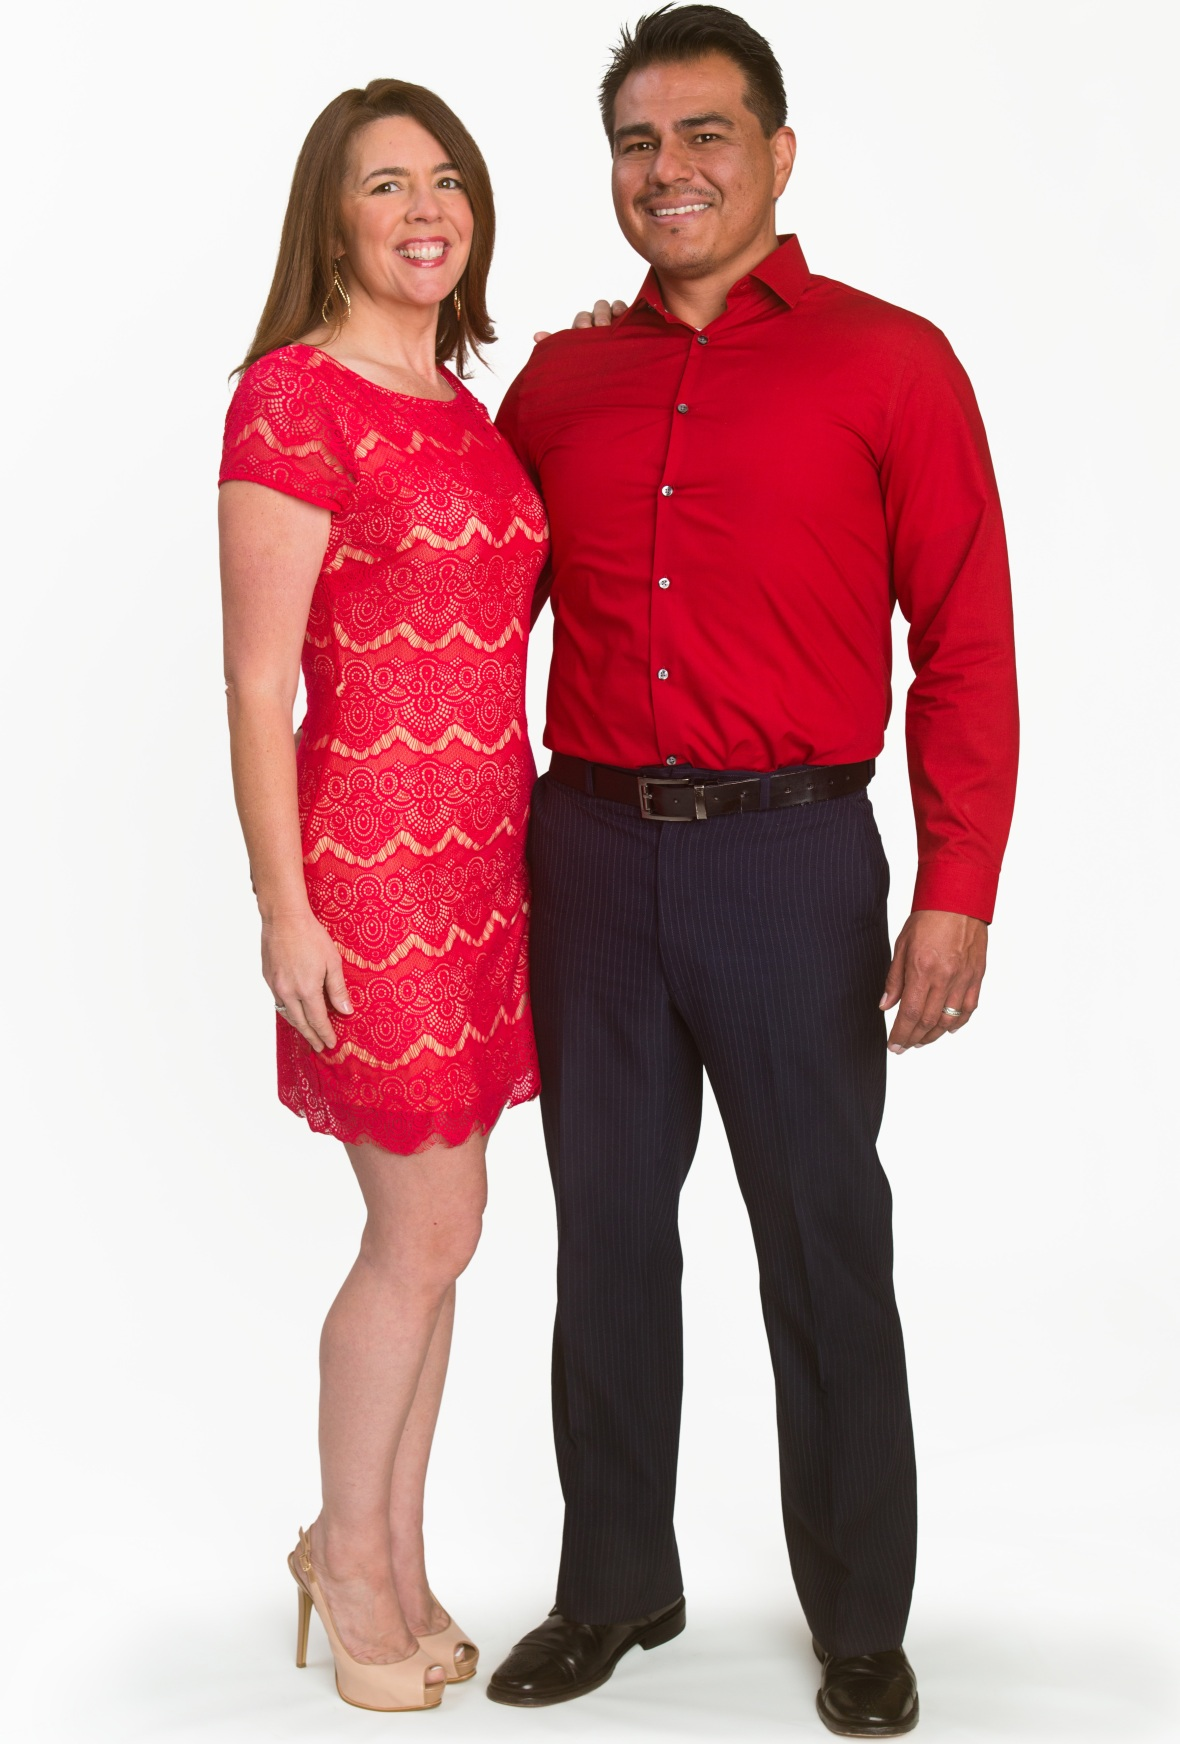 weight loss wednesday couple after